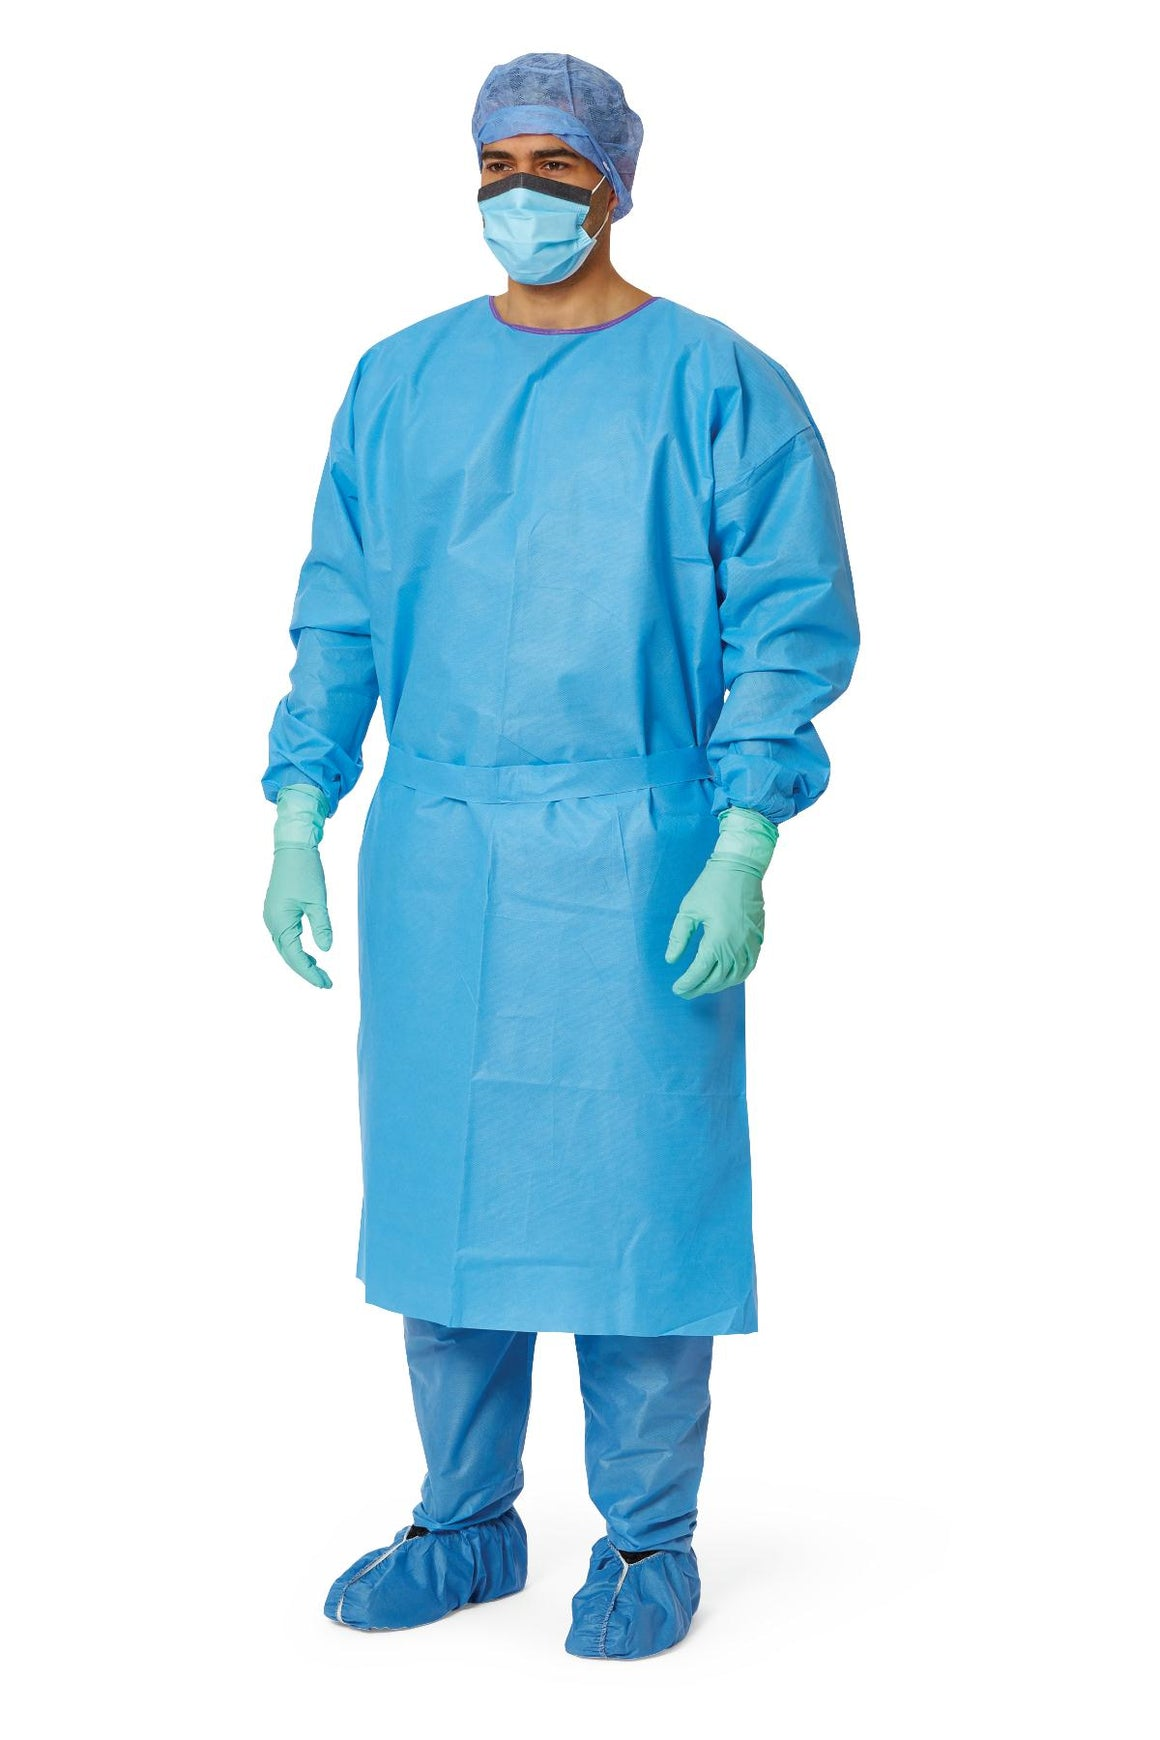 AAMI Level 3 Isolation Gowns,Blue,Regular/Large, Case of 50